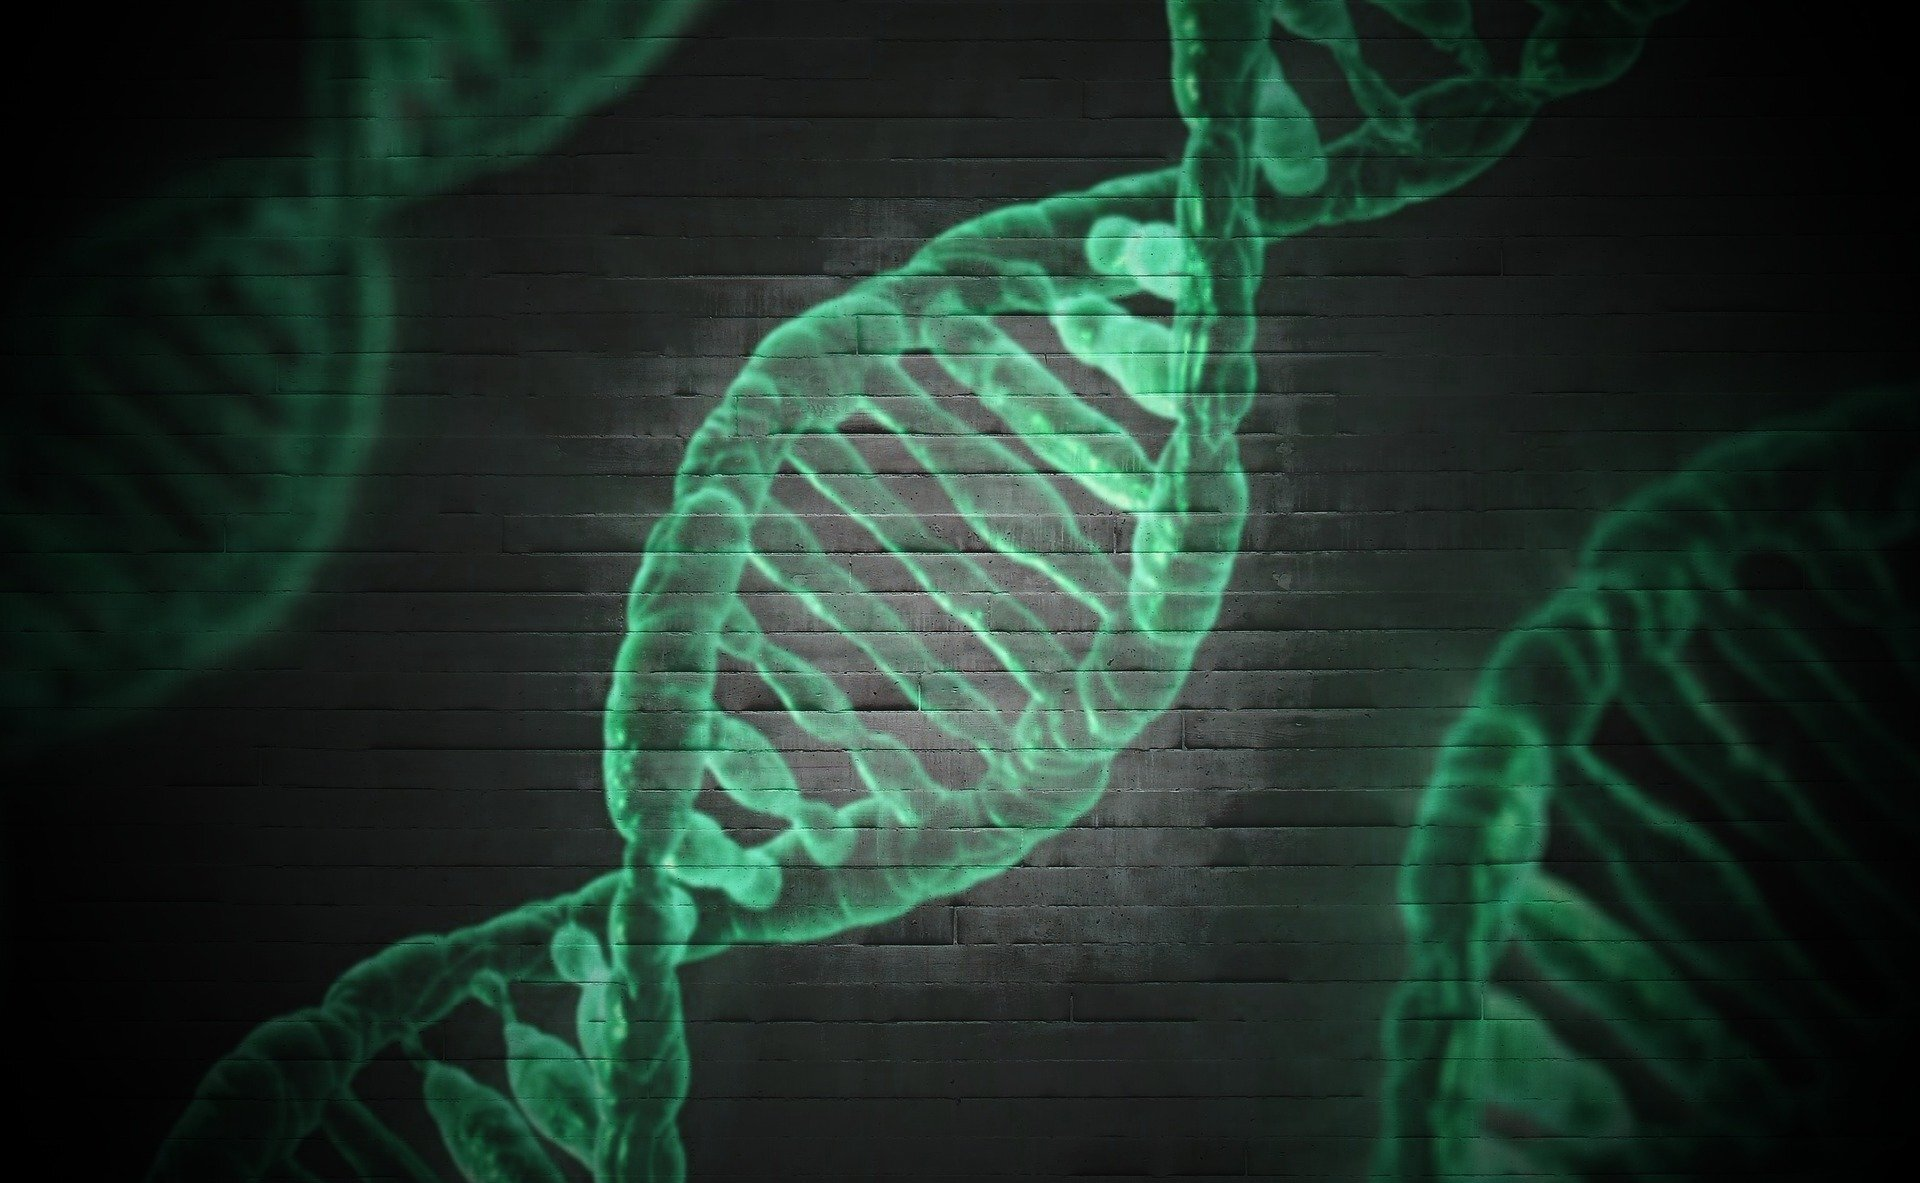 Cracking one more layer of genetic code will finally enable personalized medicine, researcher says